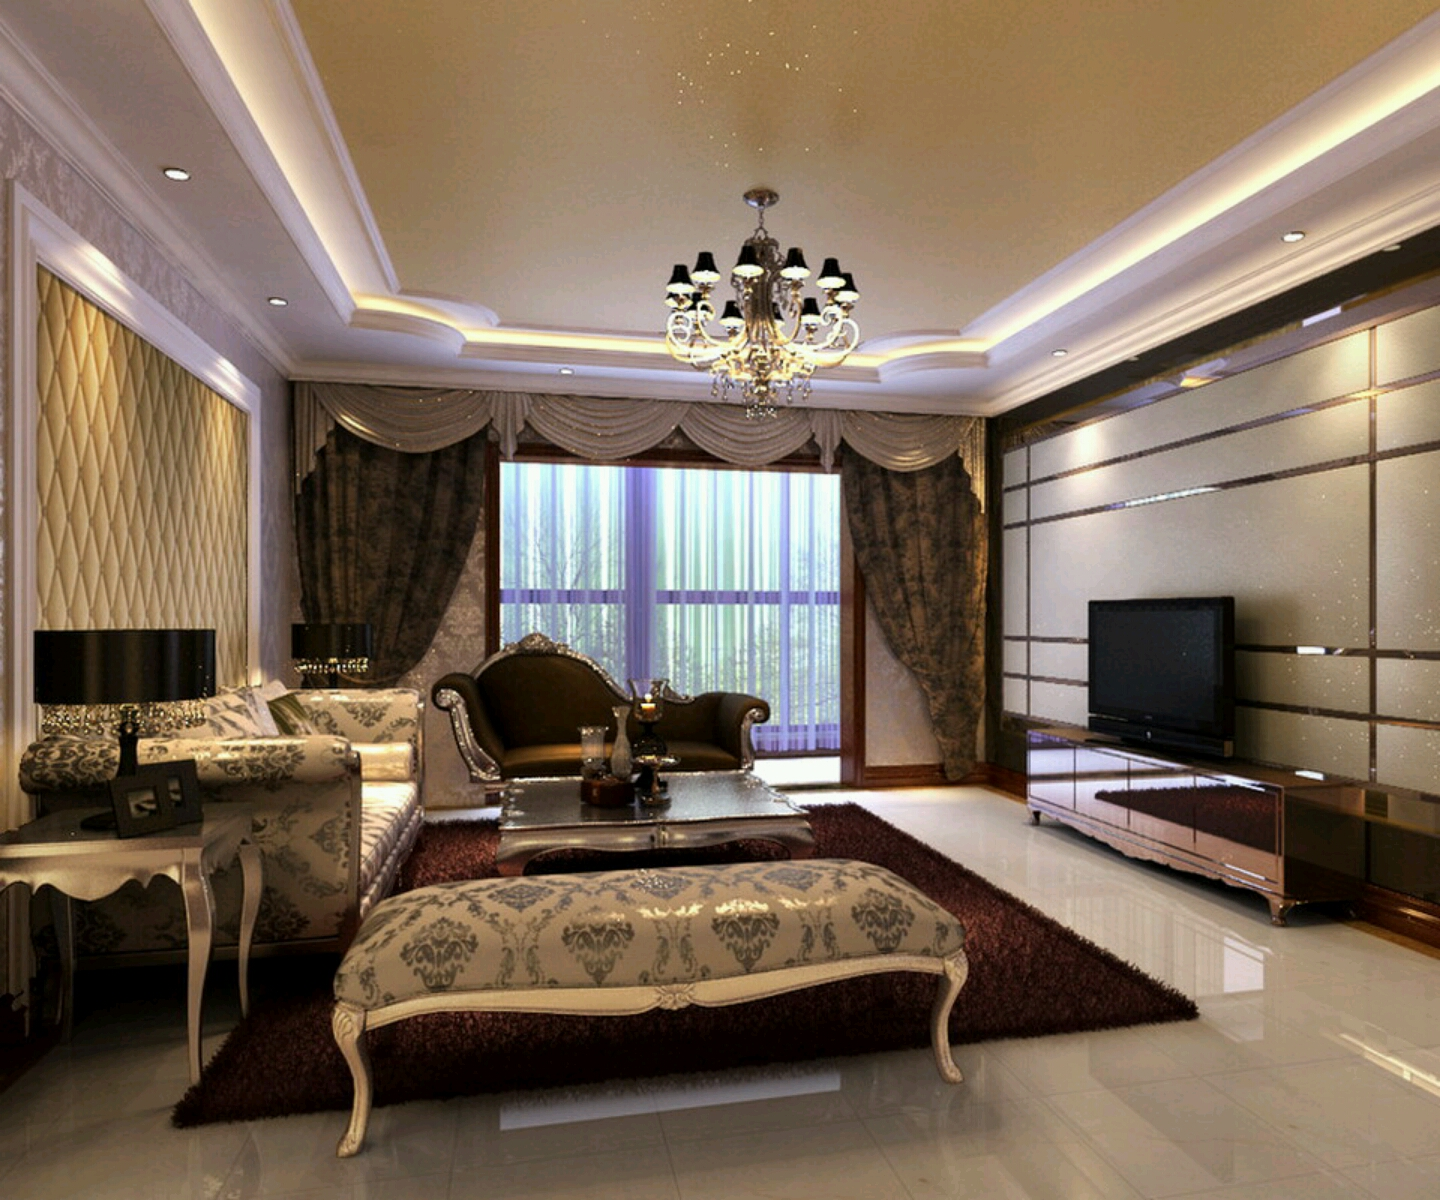 new home designs latest luxury homes interior decoration living room - Interior Design For My Home